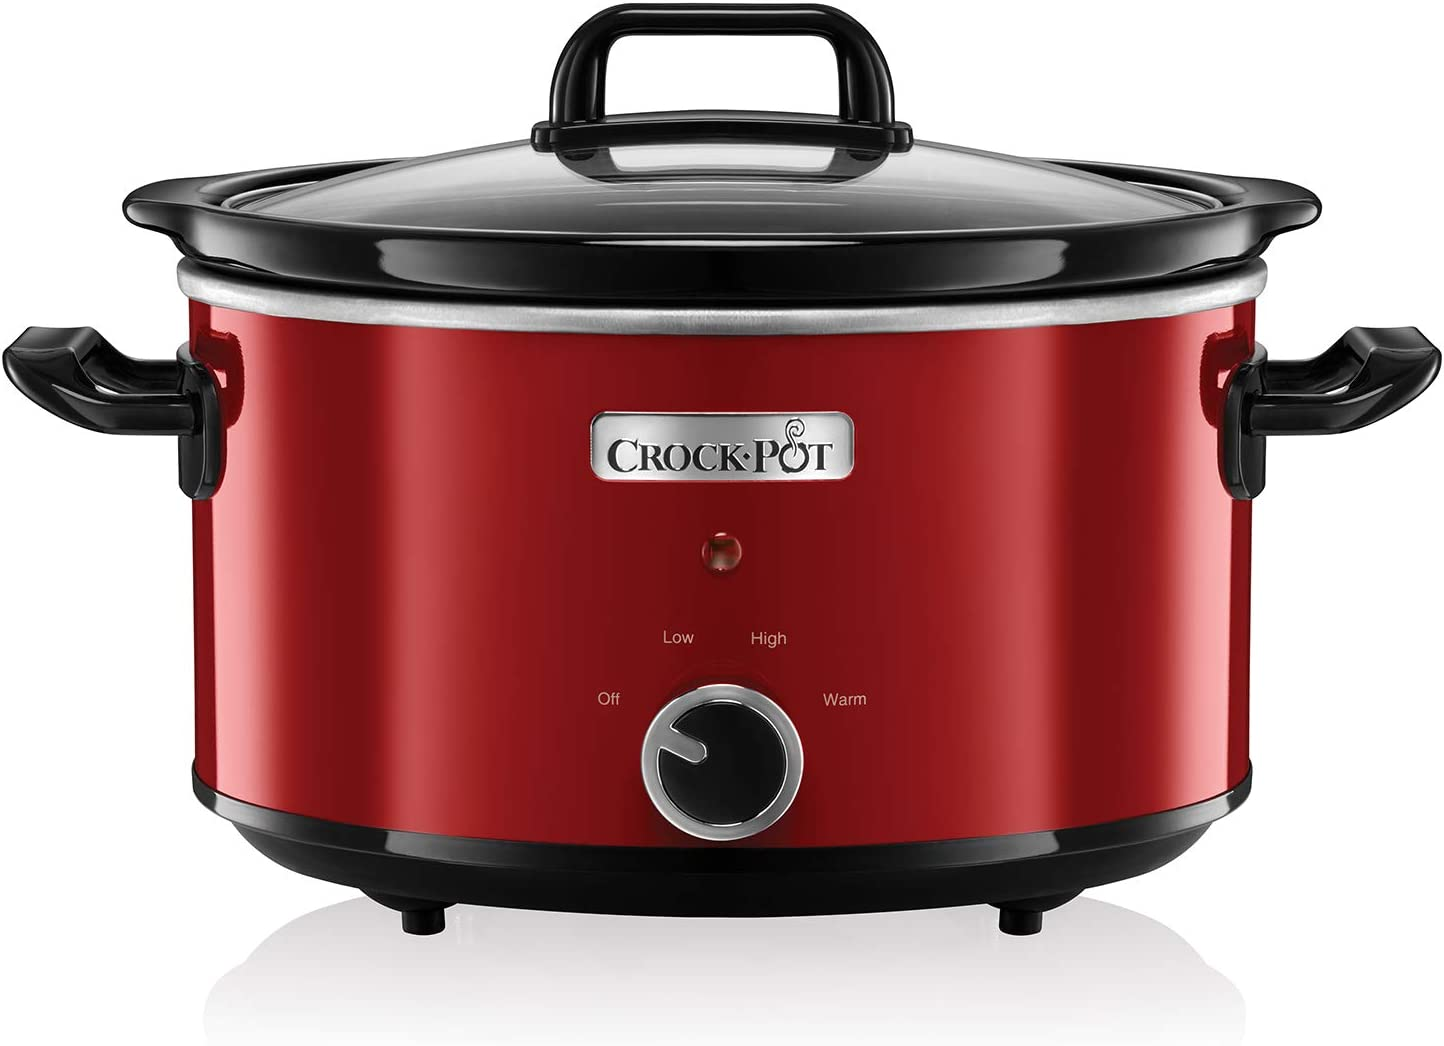 Crock-Pot SCV400RD-050, 210 W, 3.5 litros, Acero Inoxidable, color ...